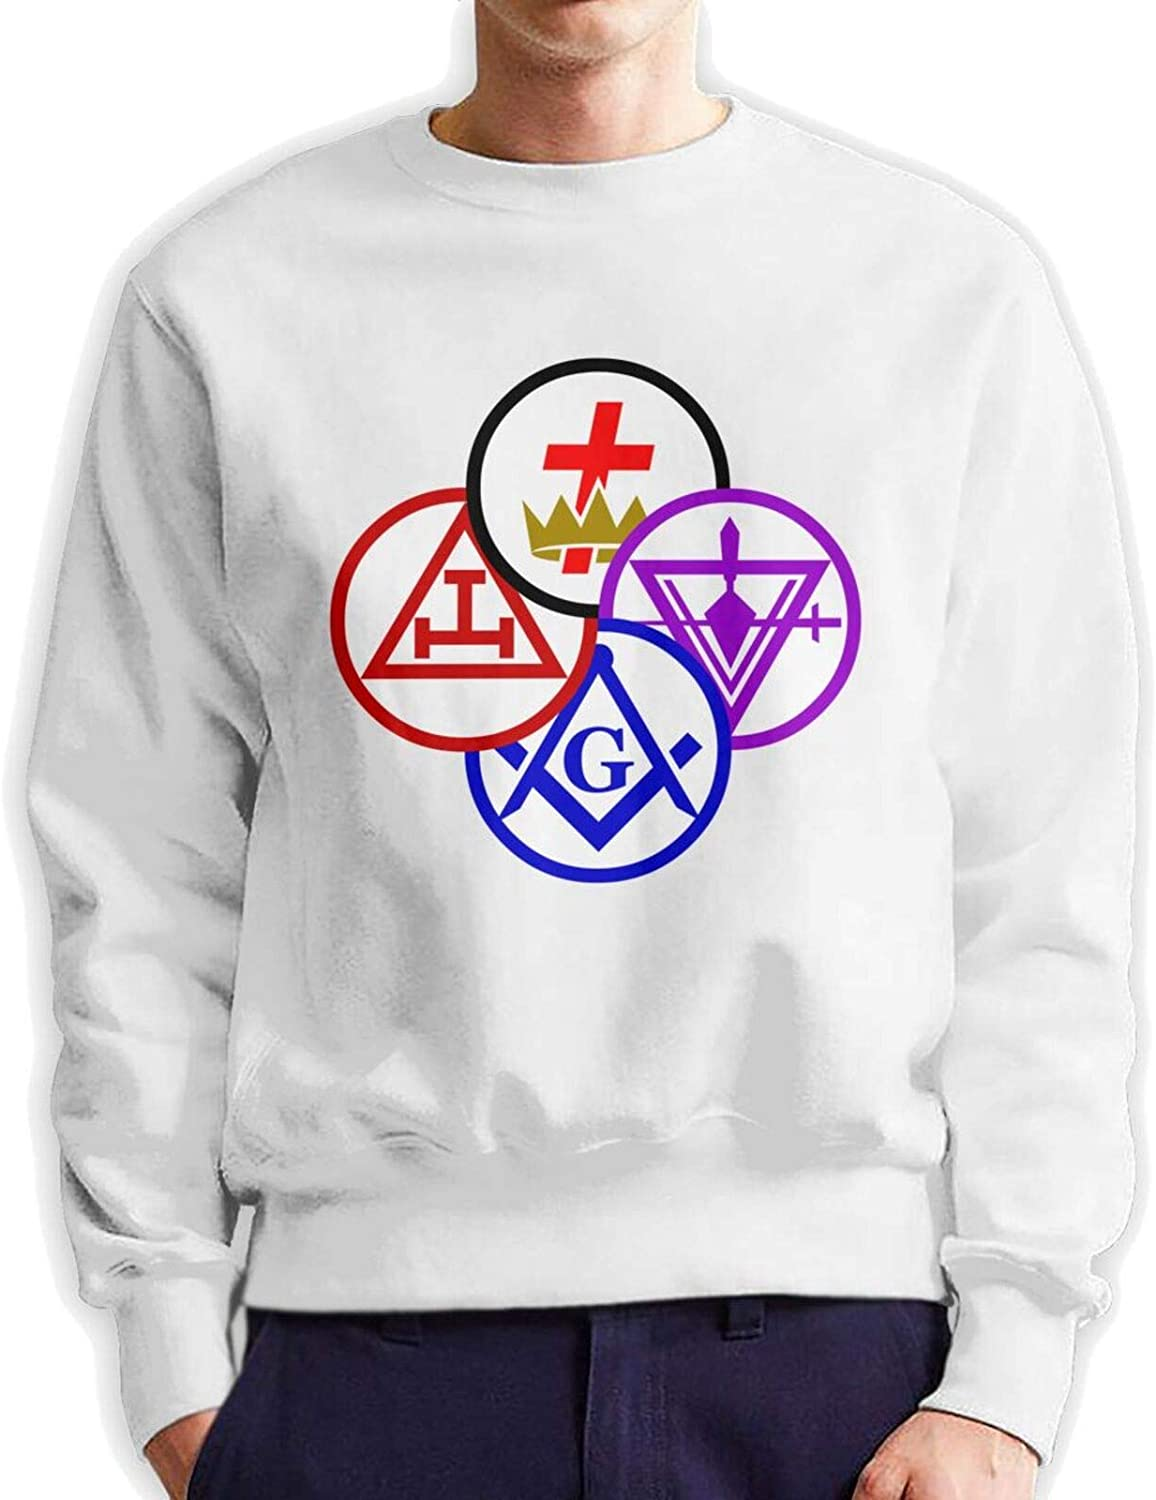 Some reservation Gifts York Rite Templar Royal Arch Round Mens Pullov Top T-Shirt Hoody